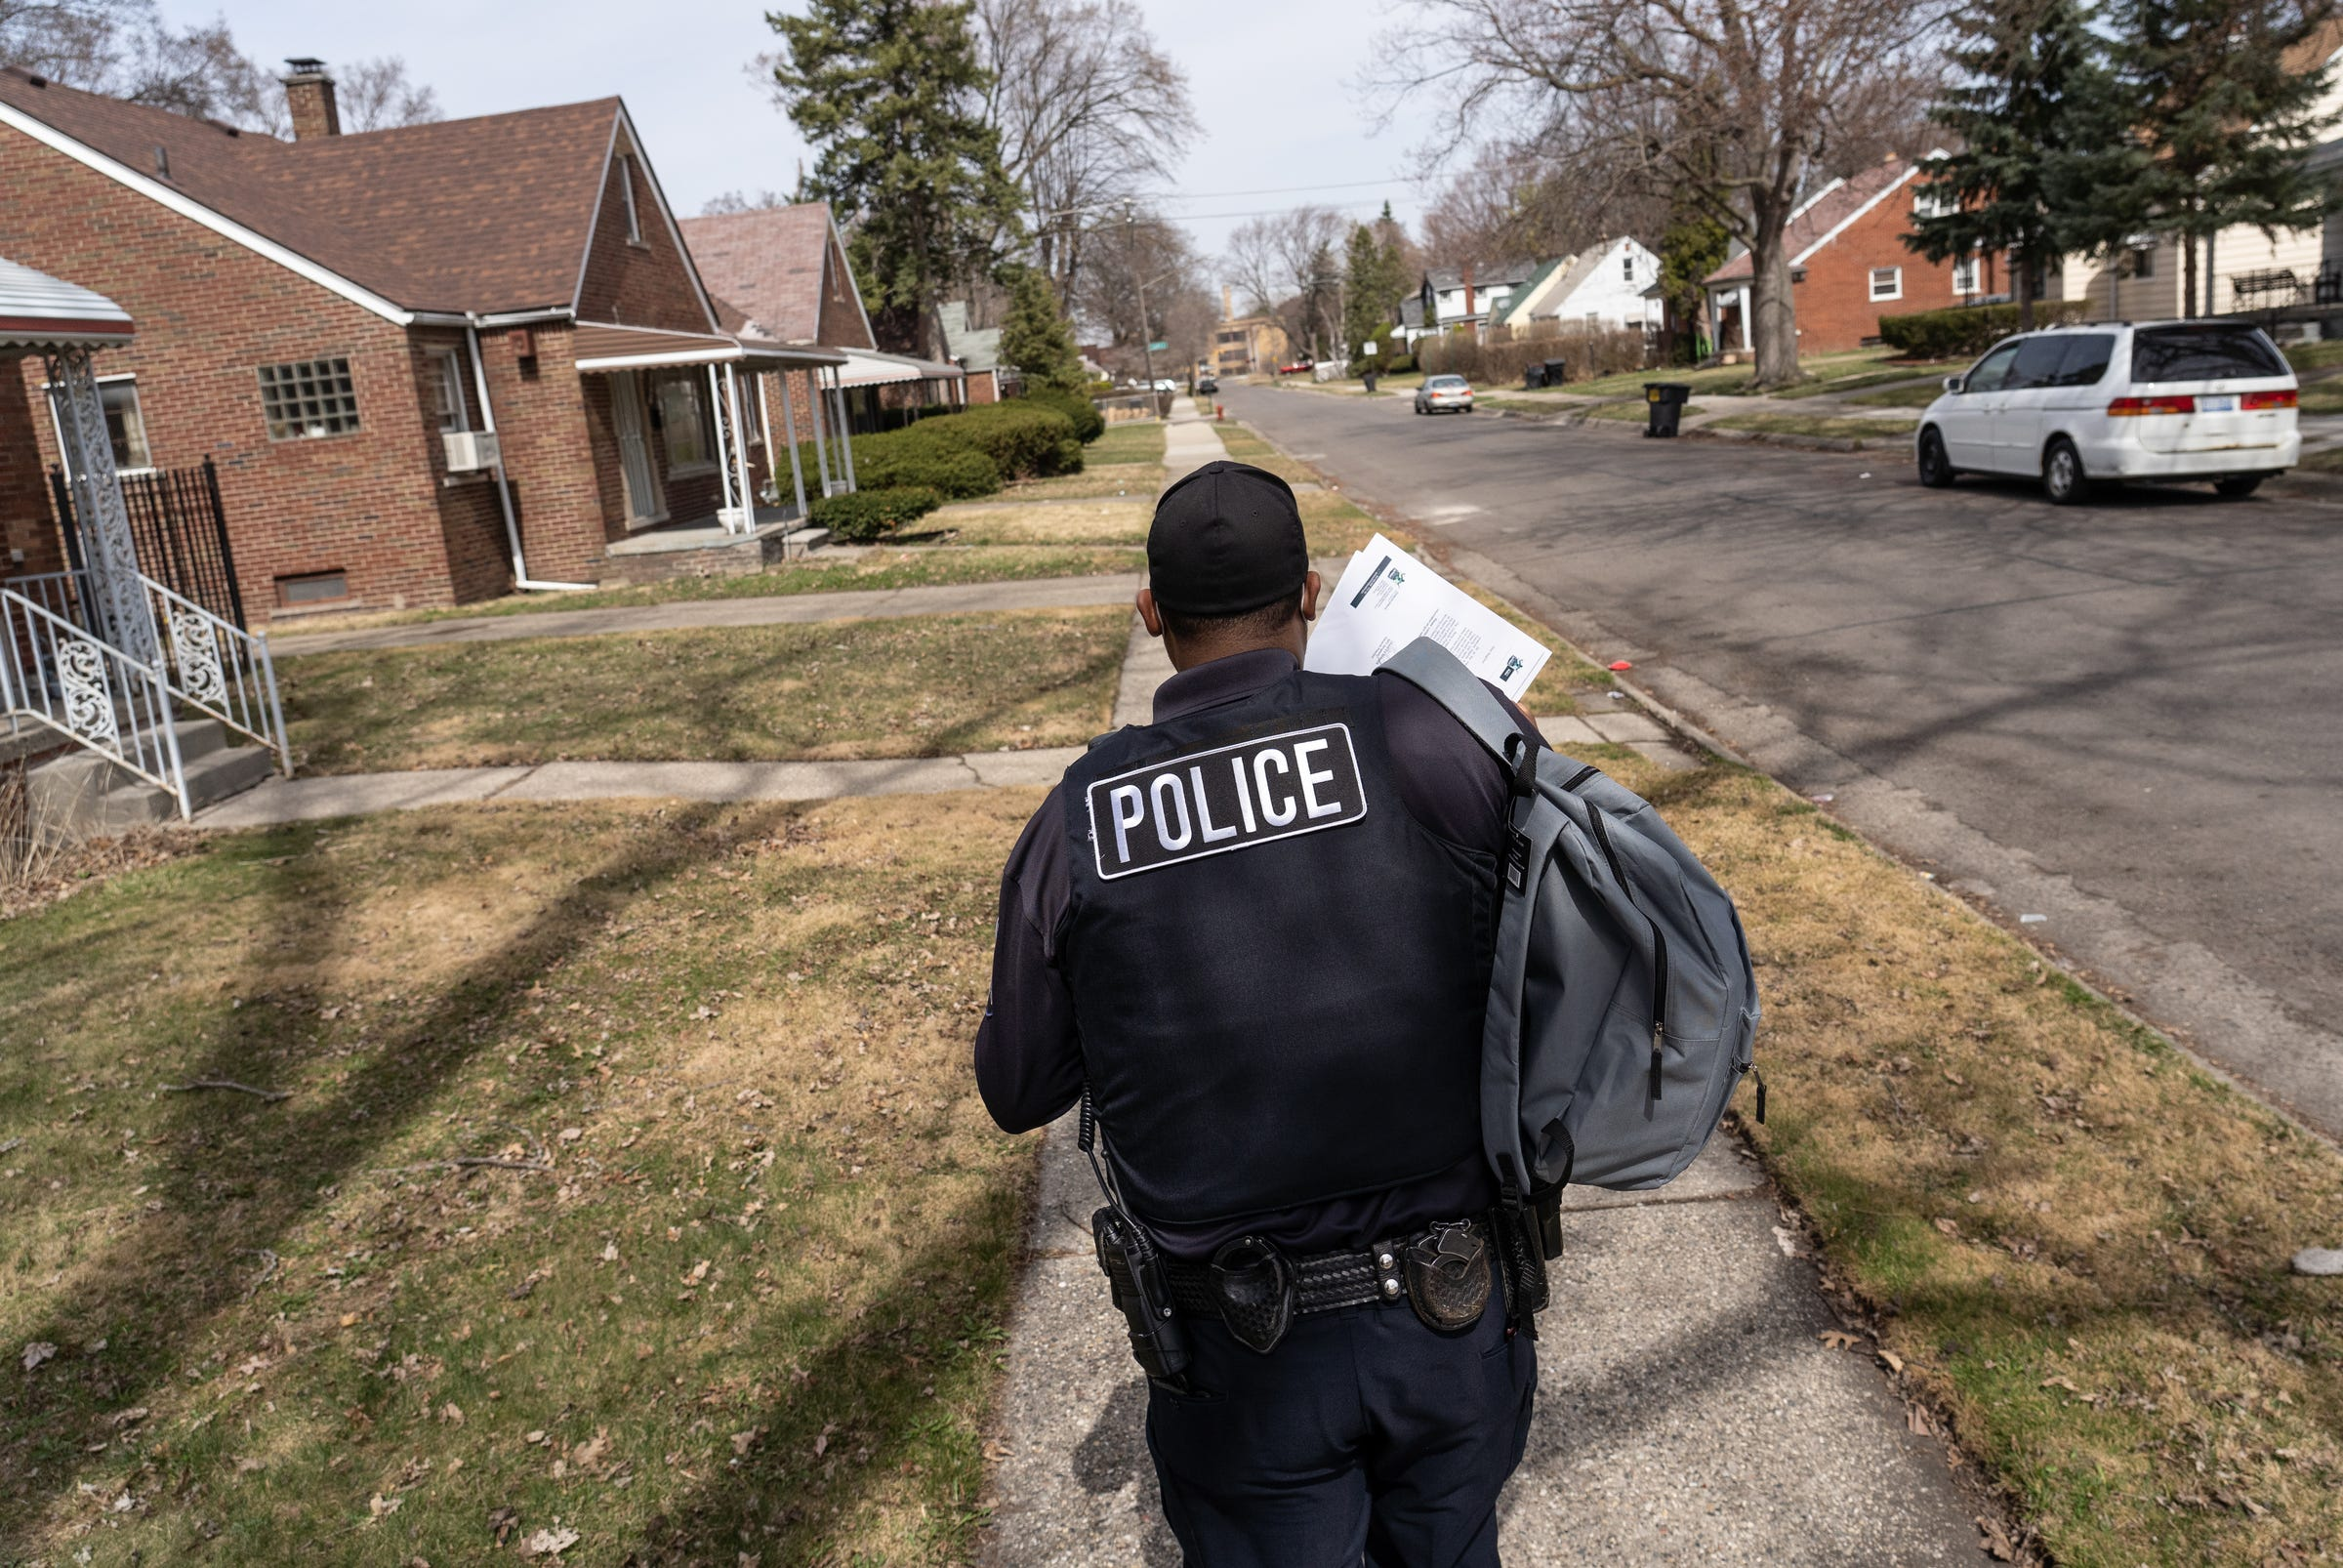 Detroit Police Department Neighborhood Police Officer Dan Robinson walks around while handing out gun safety information and gun locks as officers go door-to-door along Fenelon Street on Detroit's east side on Thursday, March 25, 2021.